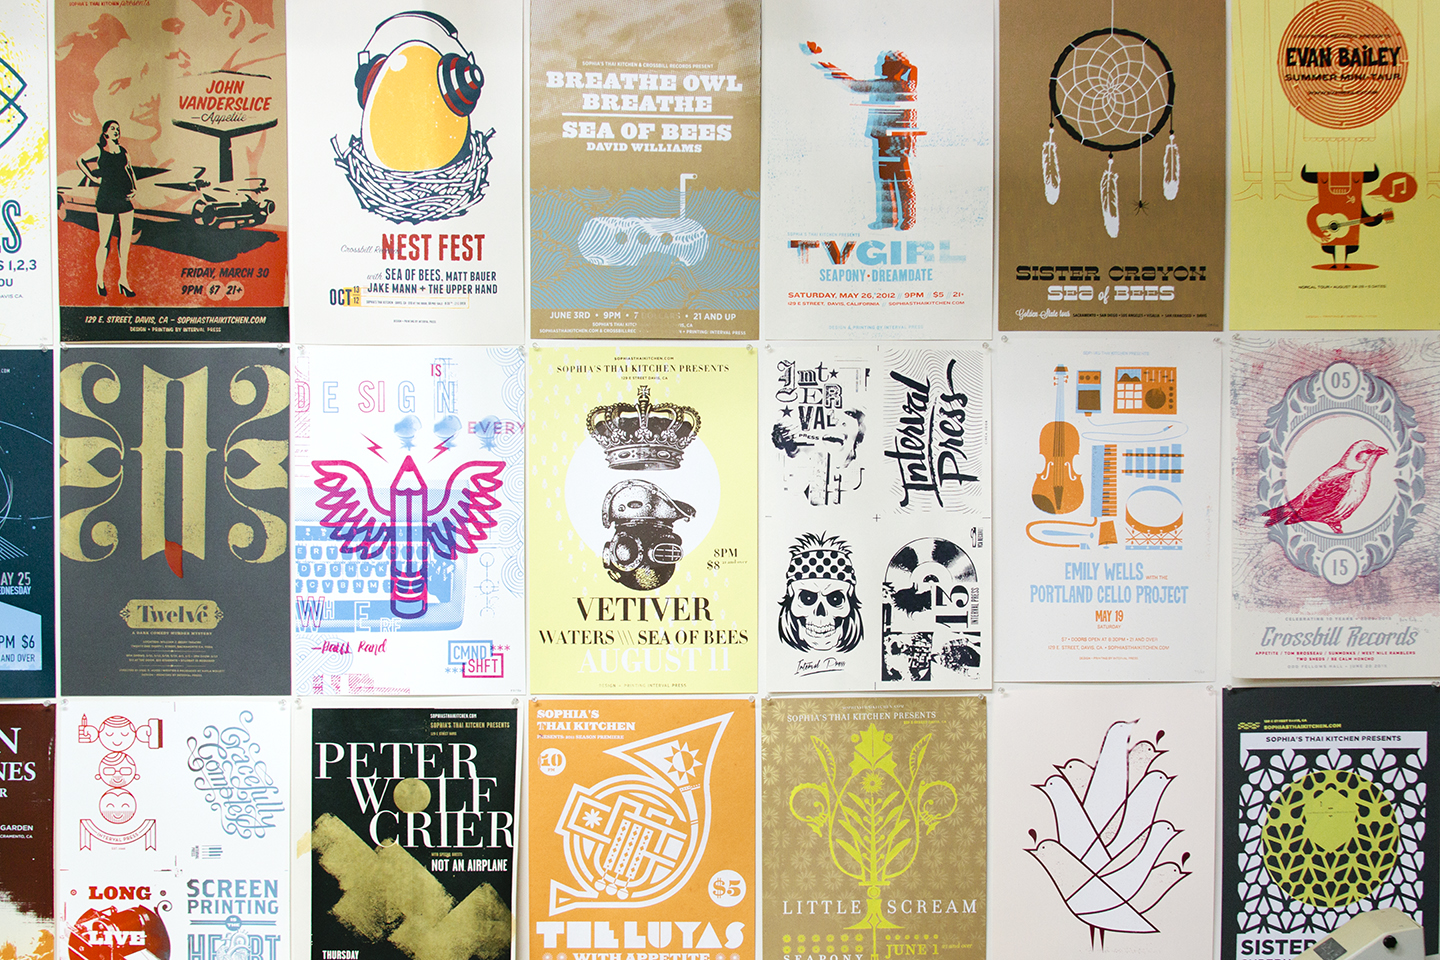 Fantastic screenprinted gig posters covering Interval Press' studio